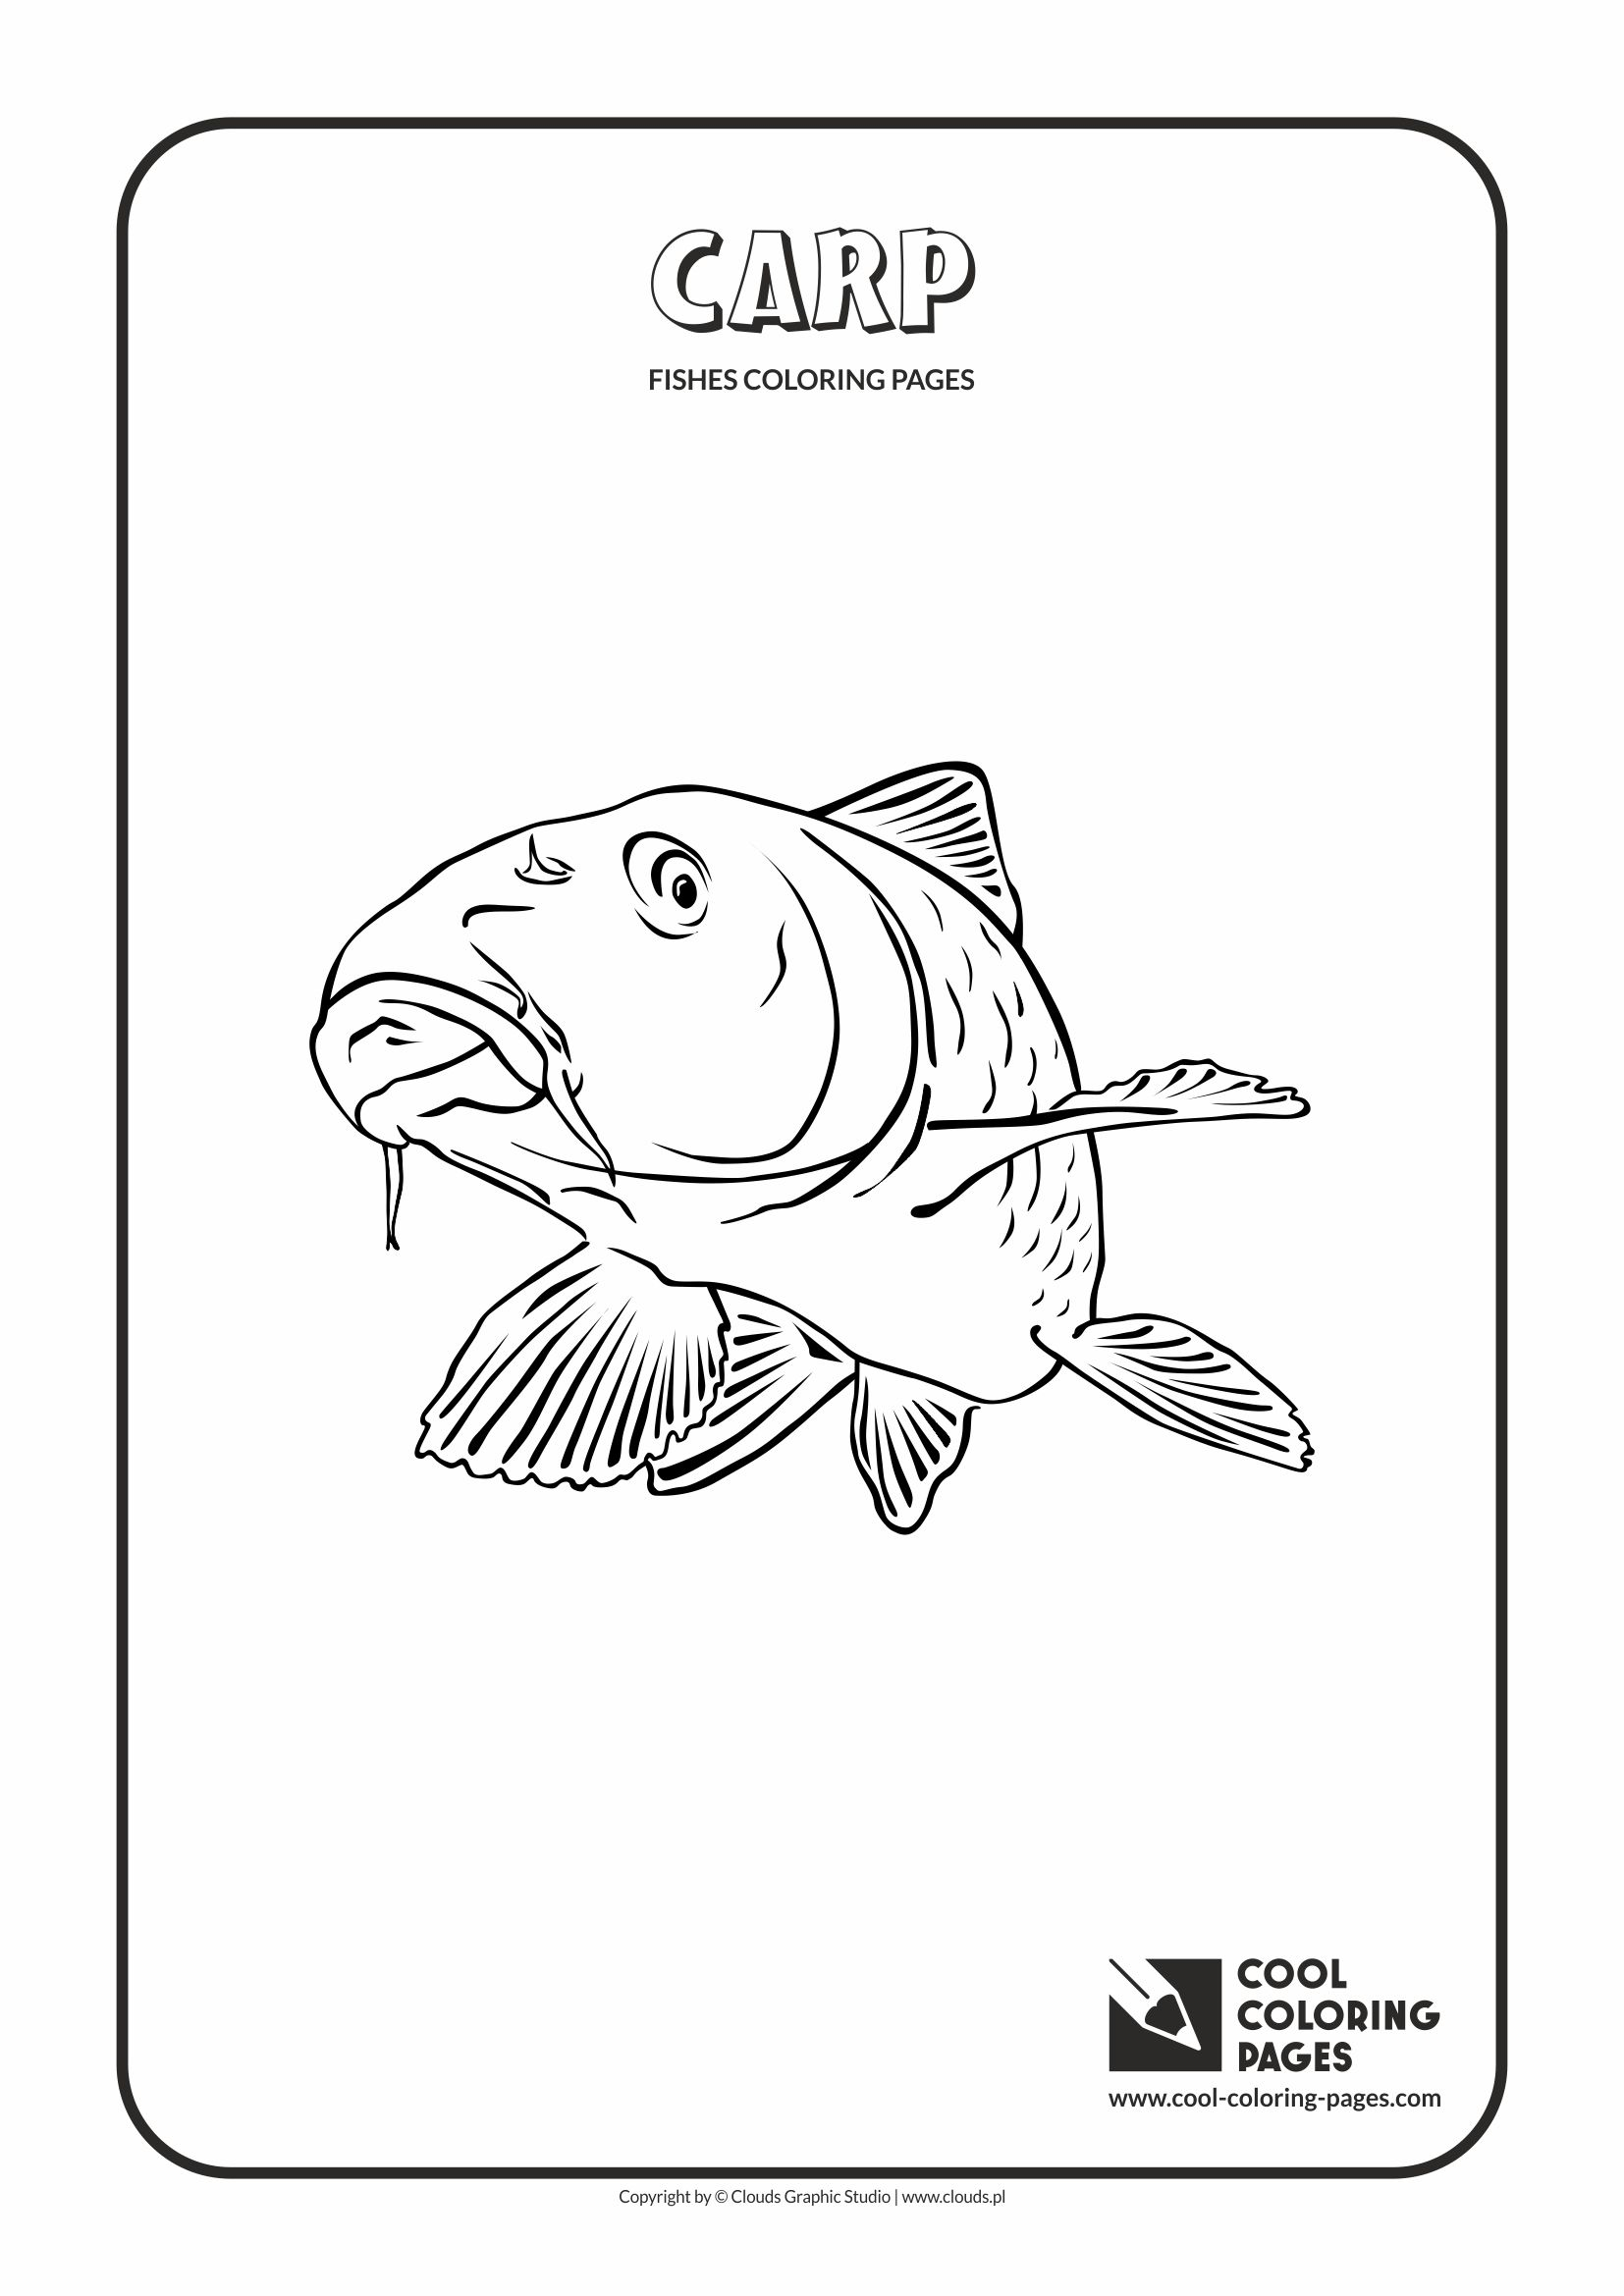 Cool Coloring Pages Carp coloring